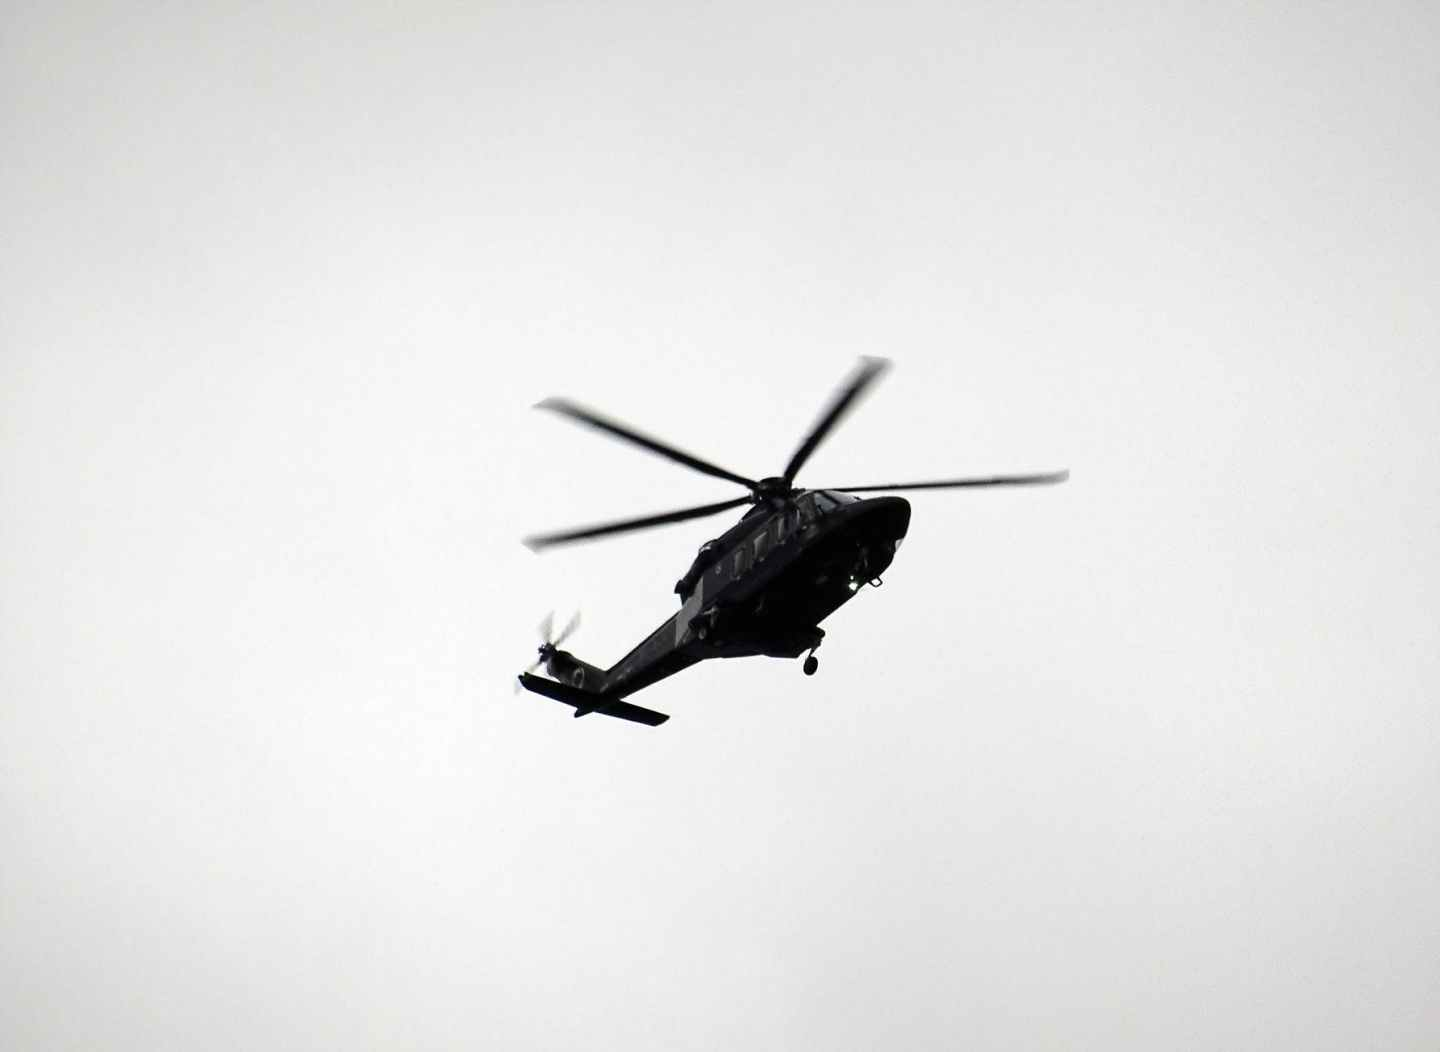 monochrome photo of flying helicopter